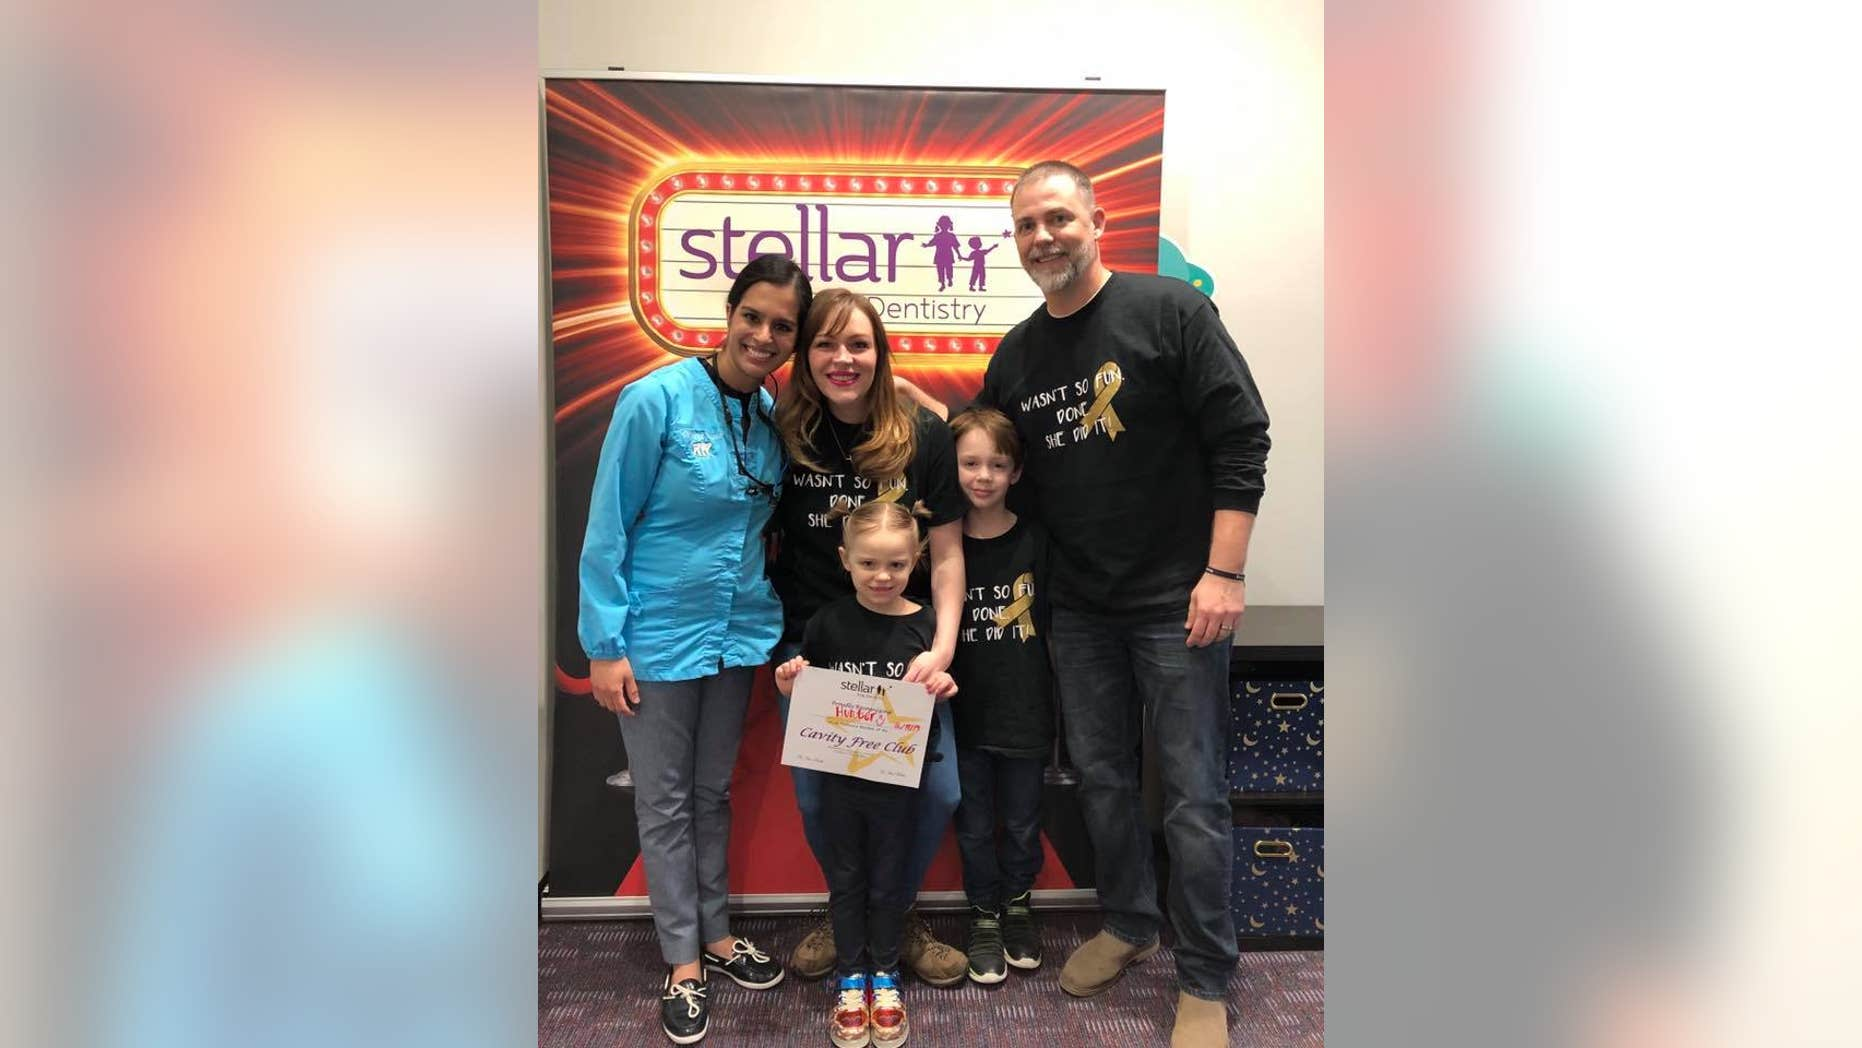 Hunter Jones, pictured holding her certificate, is now cancer-free after Dr. Harlyn Susarla, left, ordered a panoramic X-ray which revealed a growing tumor, and set-off 18 months of intense treatment to beat an aggressive cancer.